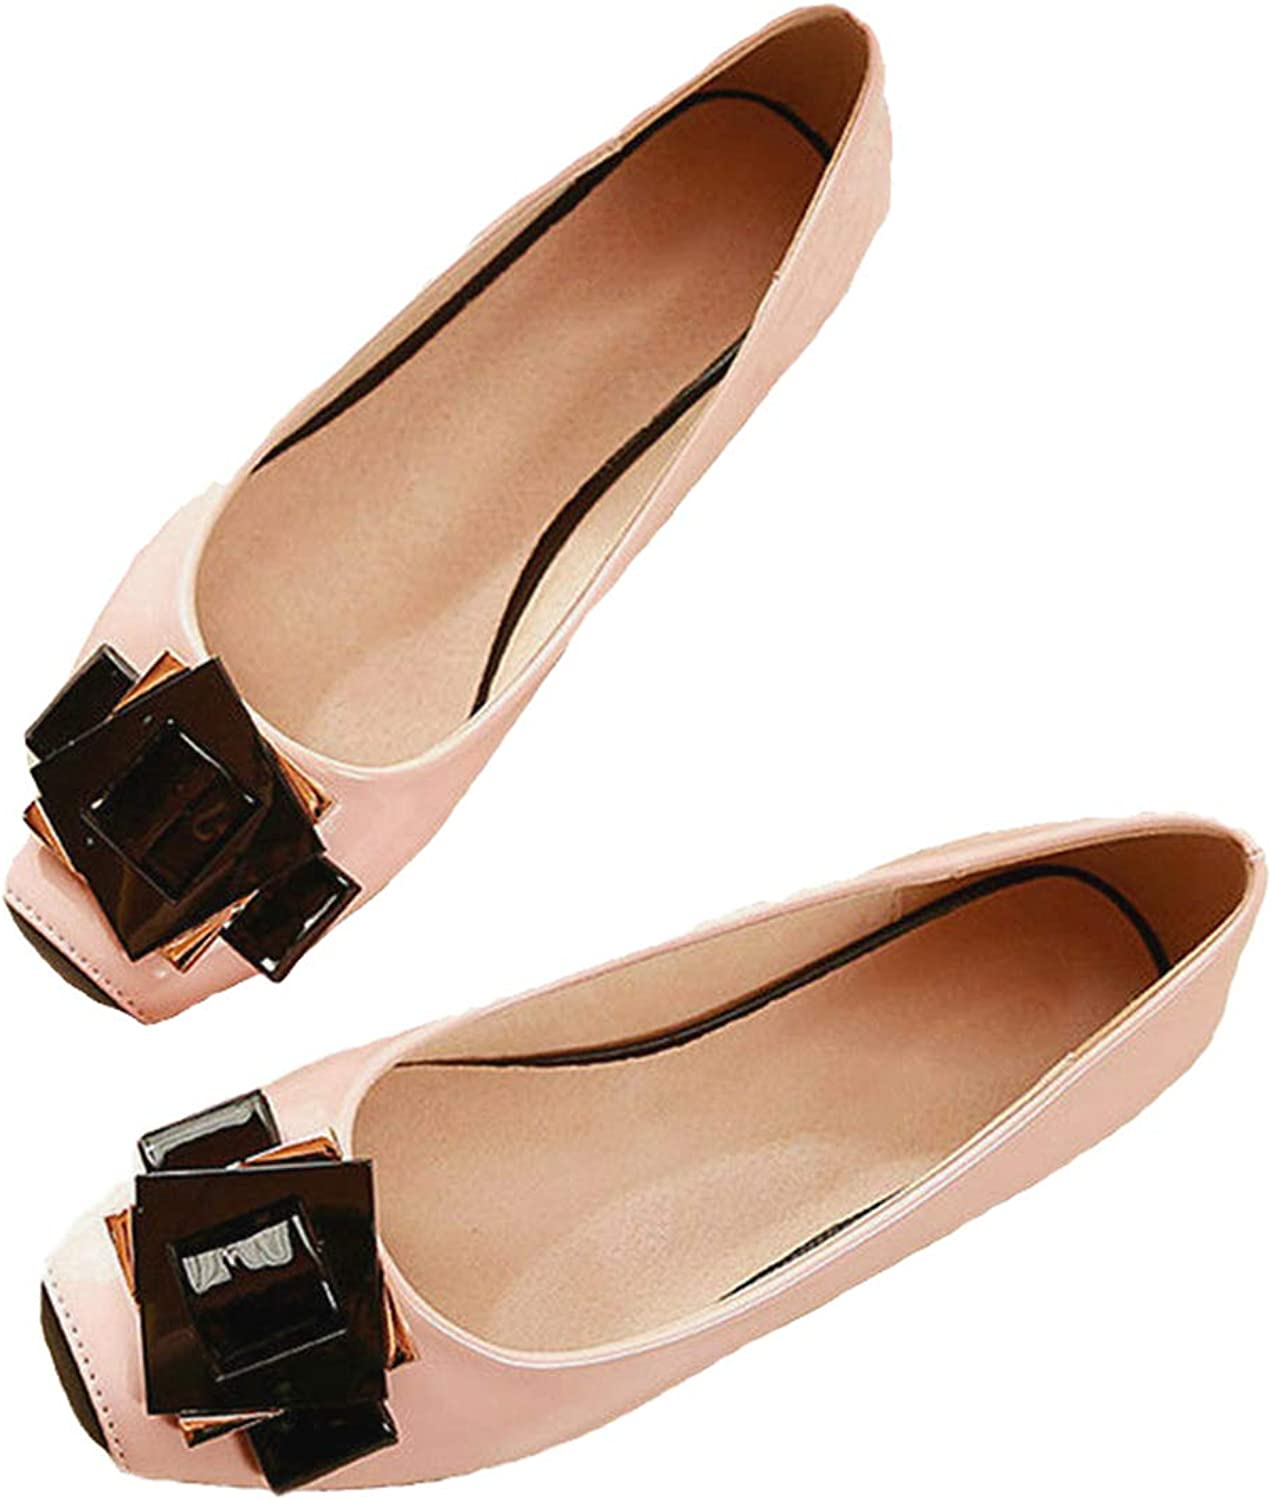 Owen Moll Women Beige Flats, Sweet Square Toe Patent Leather Ballet Loafers shoes